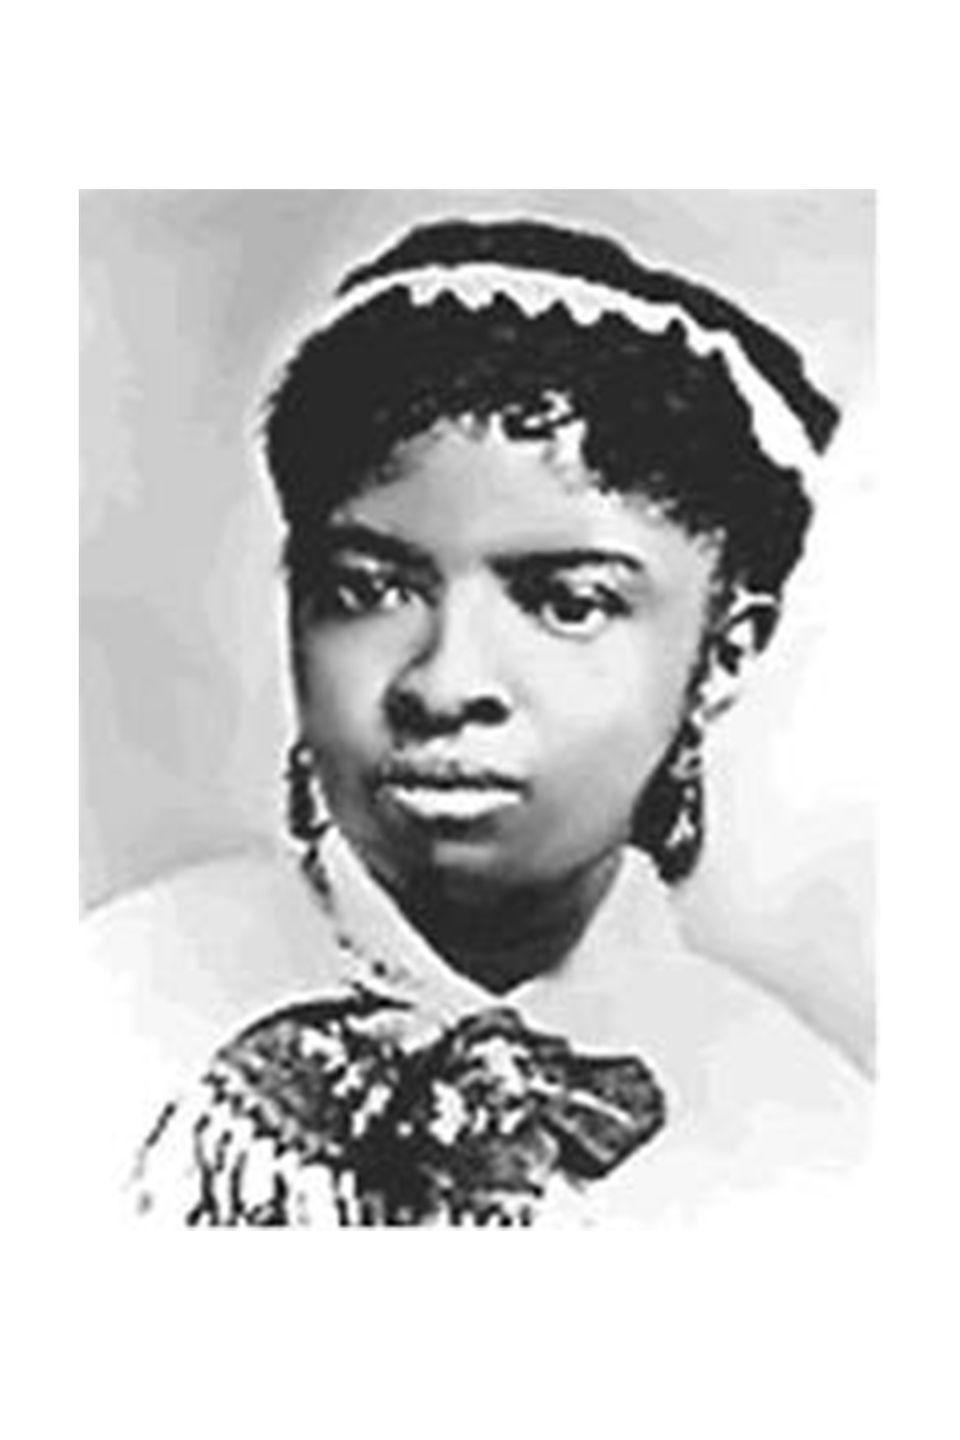 """<p>Rebecca Lee Crumpler was the first Black female doctor in the United States. After <a href=""""https://www.pbs.org/newshour/health/celebrating-rebecca-lee-crumpler-first-african-american-physician"""" rel=""""nofollow noopener"""" target=""""_blank"""" data-ylk=""""slk:attending the prestigious Massachusetts private school"""" class=""""link rapid-noclick-resp"""">attending the prestigious Massachusetts private school</a> West-Newton English and Classical School, she worked as a nurse for eight years until applying to medical school in 1860 at the New England Female Medical College. She was accepted and would go on to graduate four years later. Though little is known of her career, PBS reported that she worked as a physician for the Freedman's Bureau for the State of Virginia. She later practiced in Boston's predominantly Black neighborhood at the time, Beacon Hill, and published <em>A Book of Medical Discourses in Two Parts.</em></p>"""